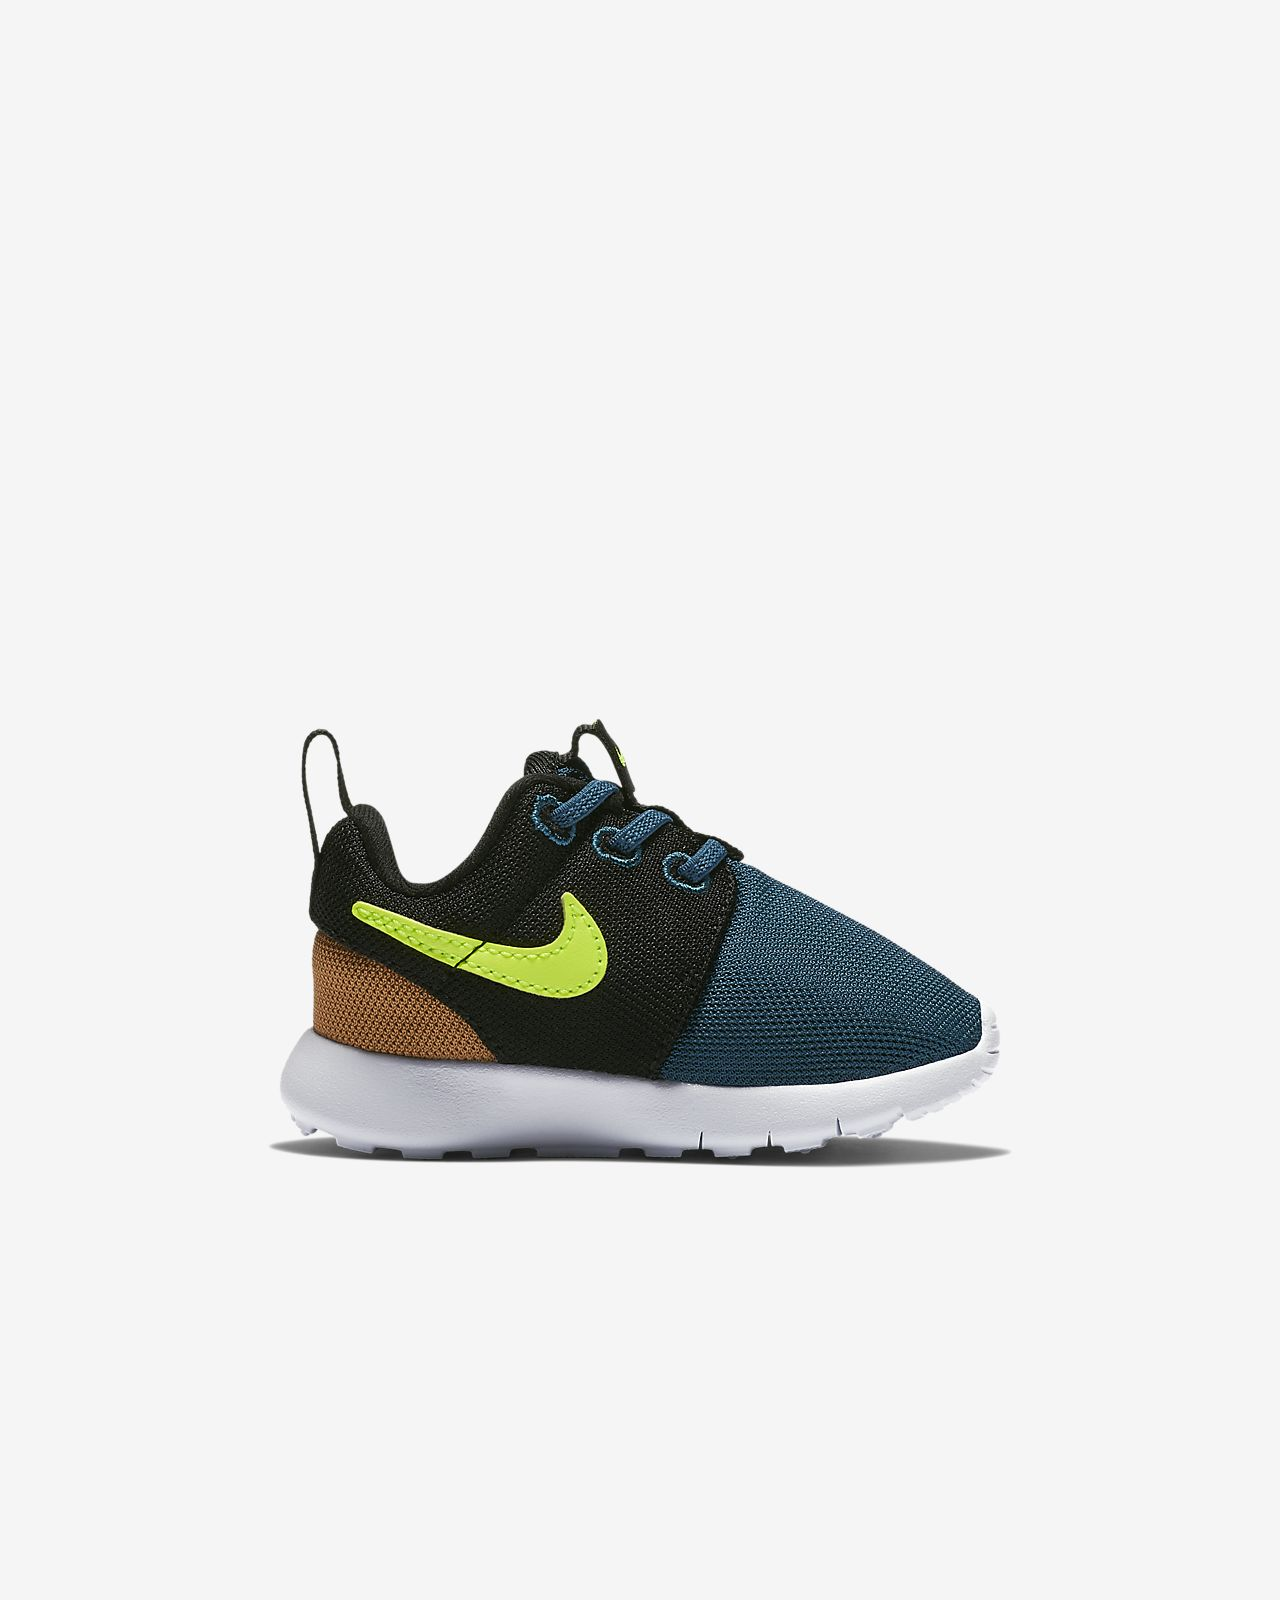 low priced 46004 18c59 Nike Roshe One Infant/Toddler Shoe